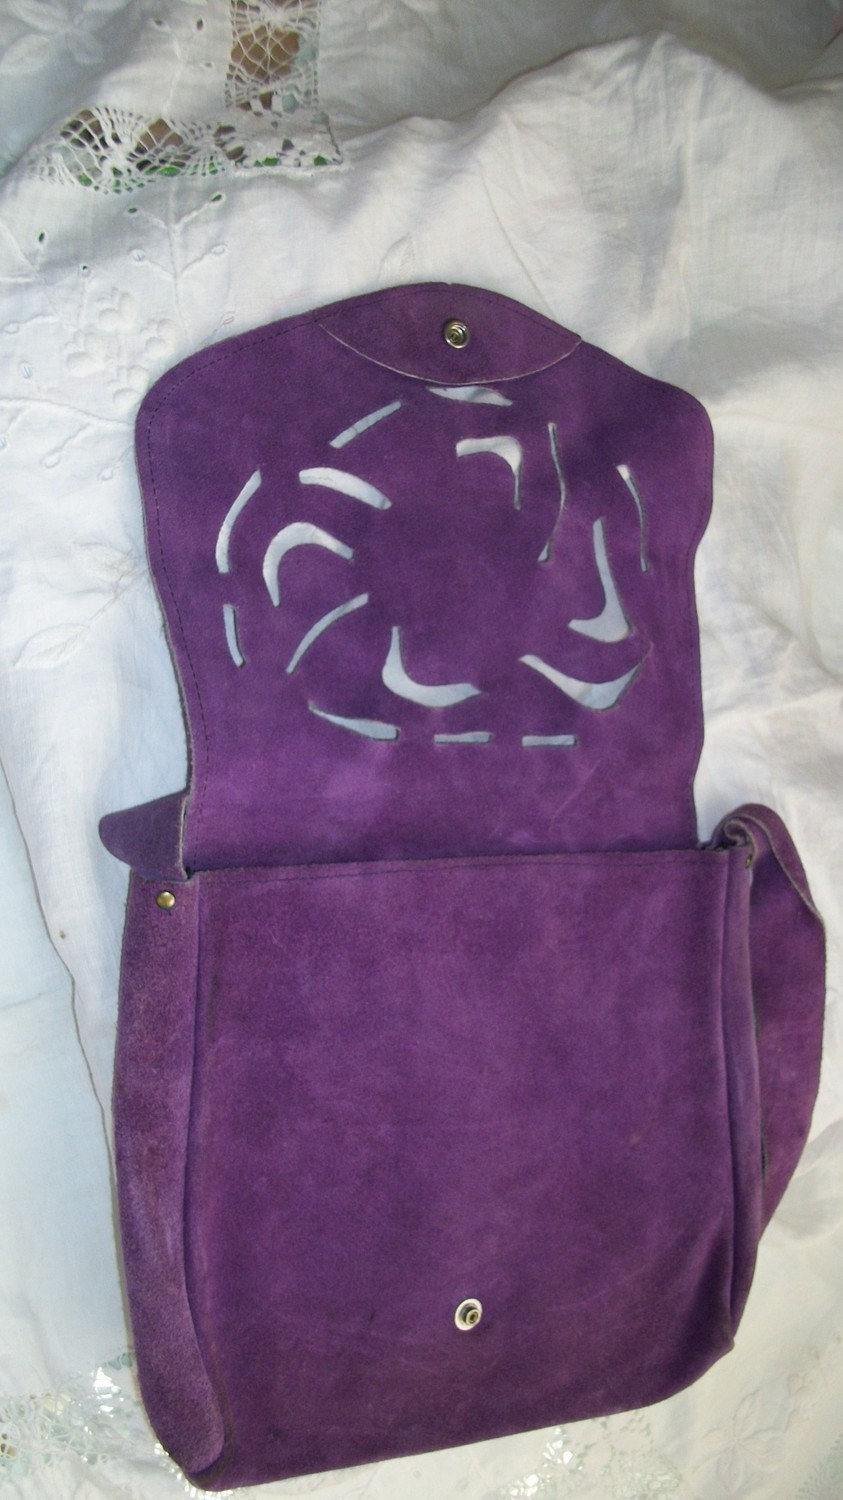 Vintage 1970s Purple Suede Purse with a Lacey Cutout Front Flap Super Cute Hippy Style Reserved for LoveStreetVintage